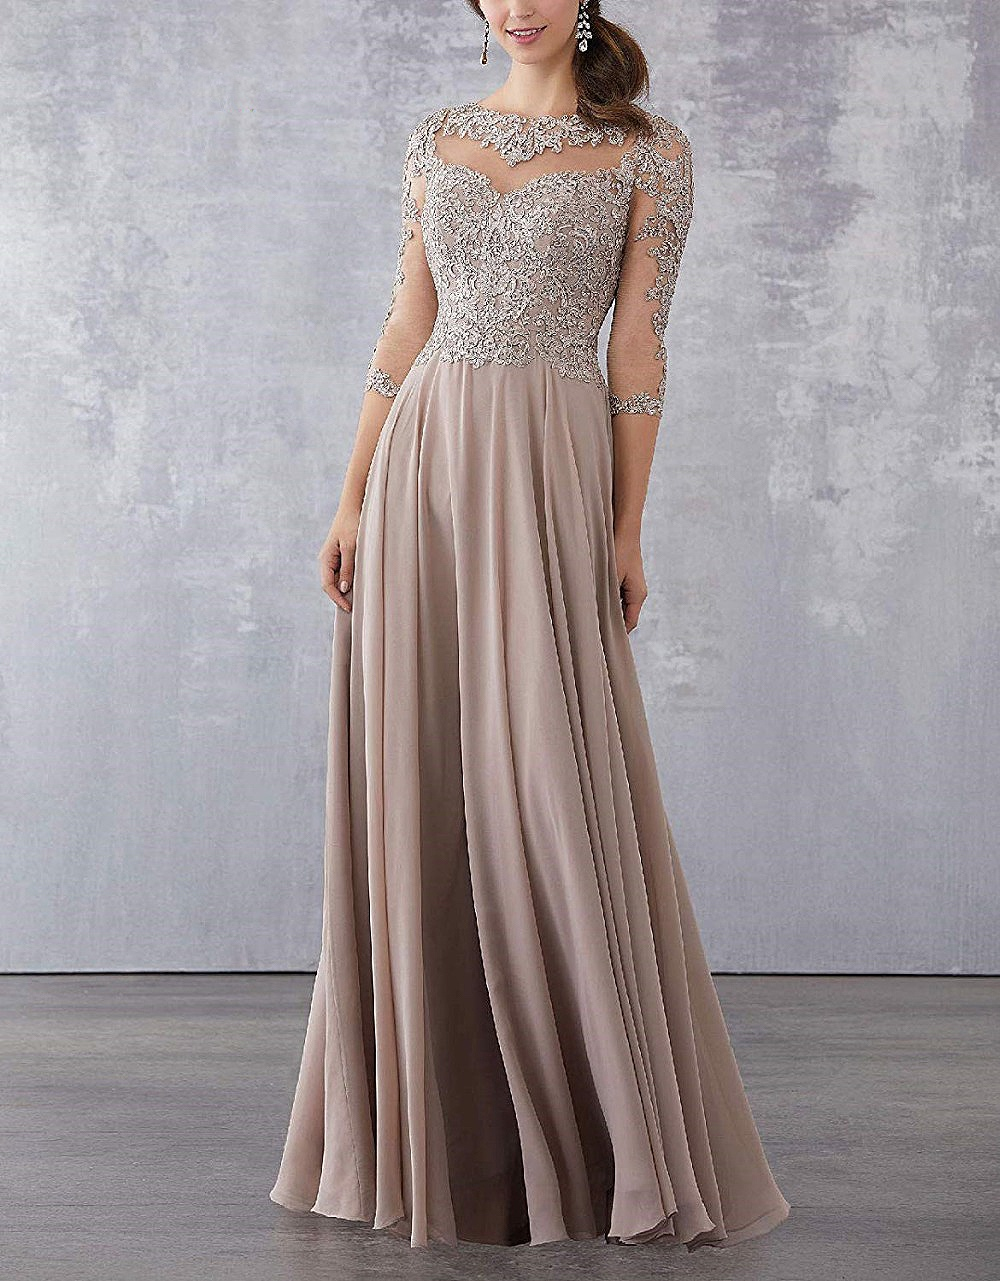 Lace Beaded Long Mother of the Bride Dresses 2020 Elegant 3/4 Sleeve Evening Mother Dress Chiffon Wedding Party Guest Gowns New